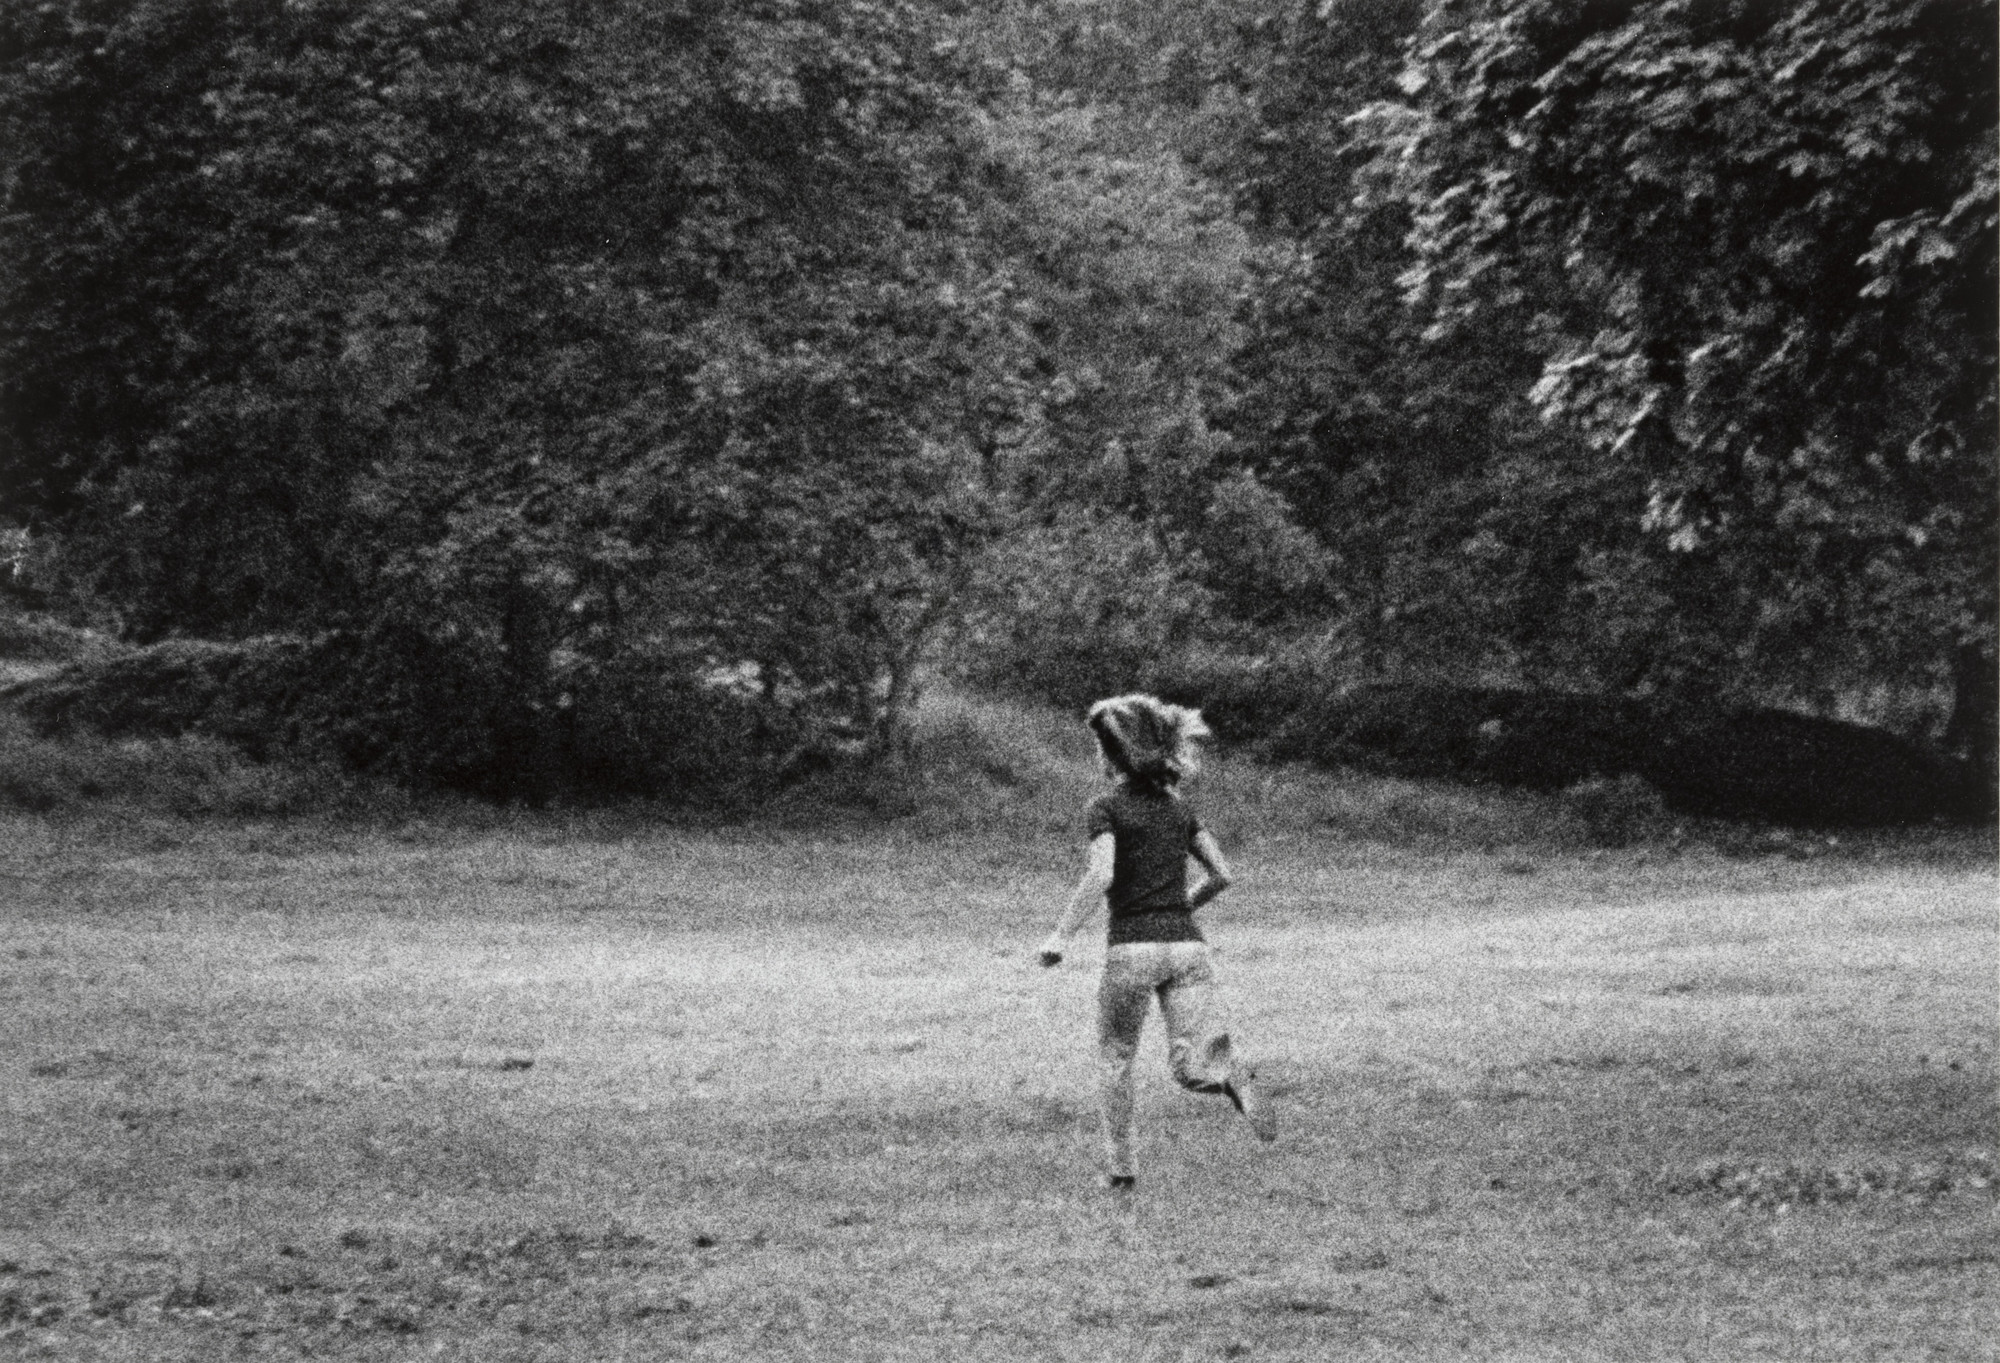 Ron Galella. Jackie Onassis Attempting to Distract Ron Galella from Photographing Her Daughter Caroline, Central Park, New York. October 4, 1971